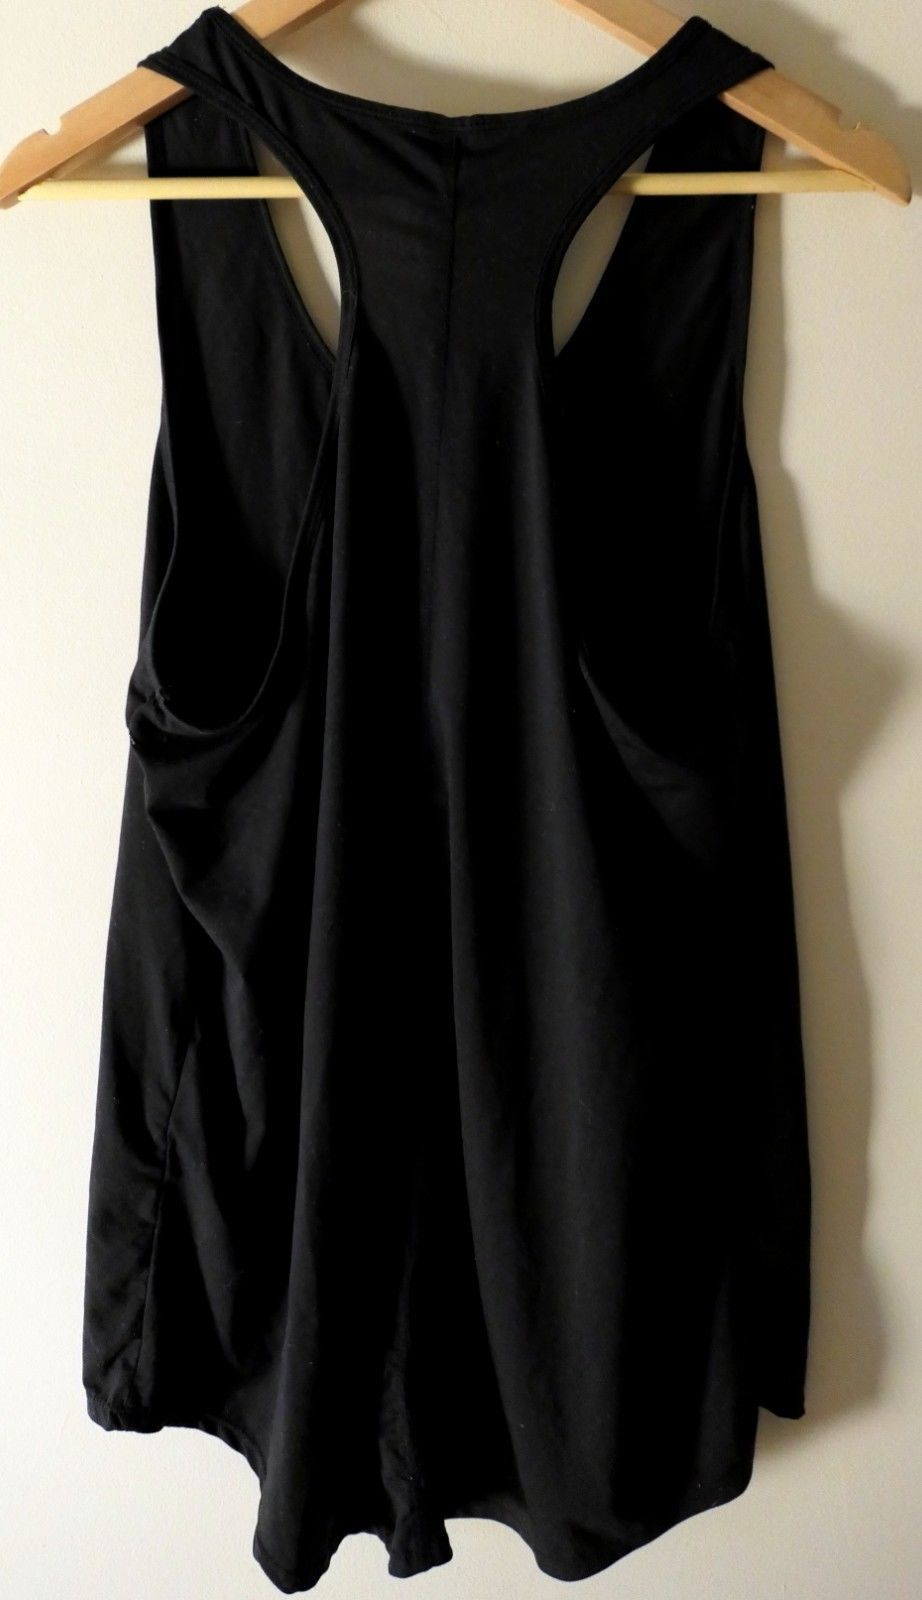 Women's Clothing Michelle Bridges Size 18 Singlet Activewear Top Clothing, Shoes, Accessories